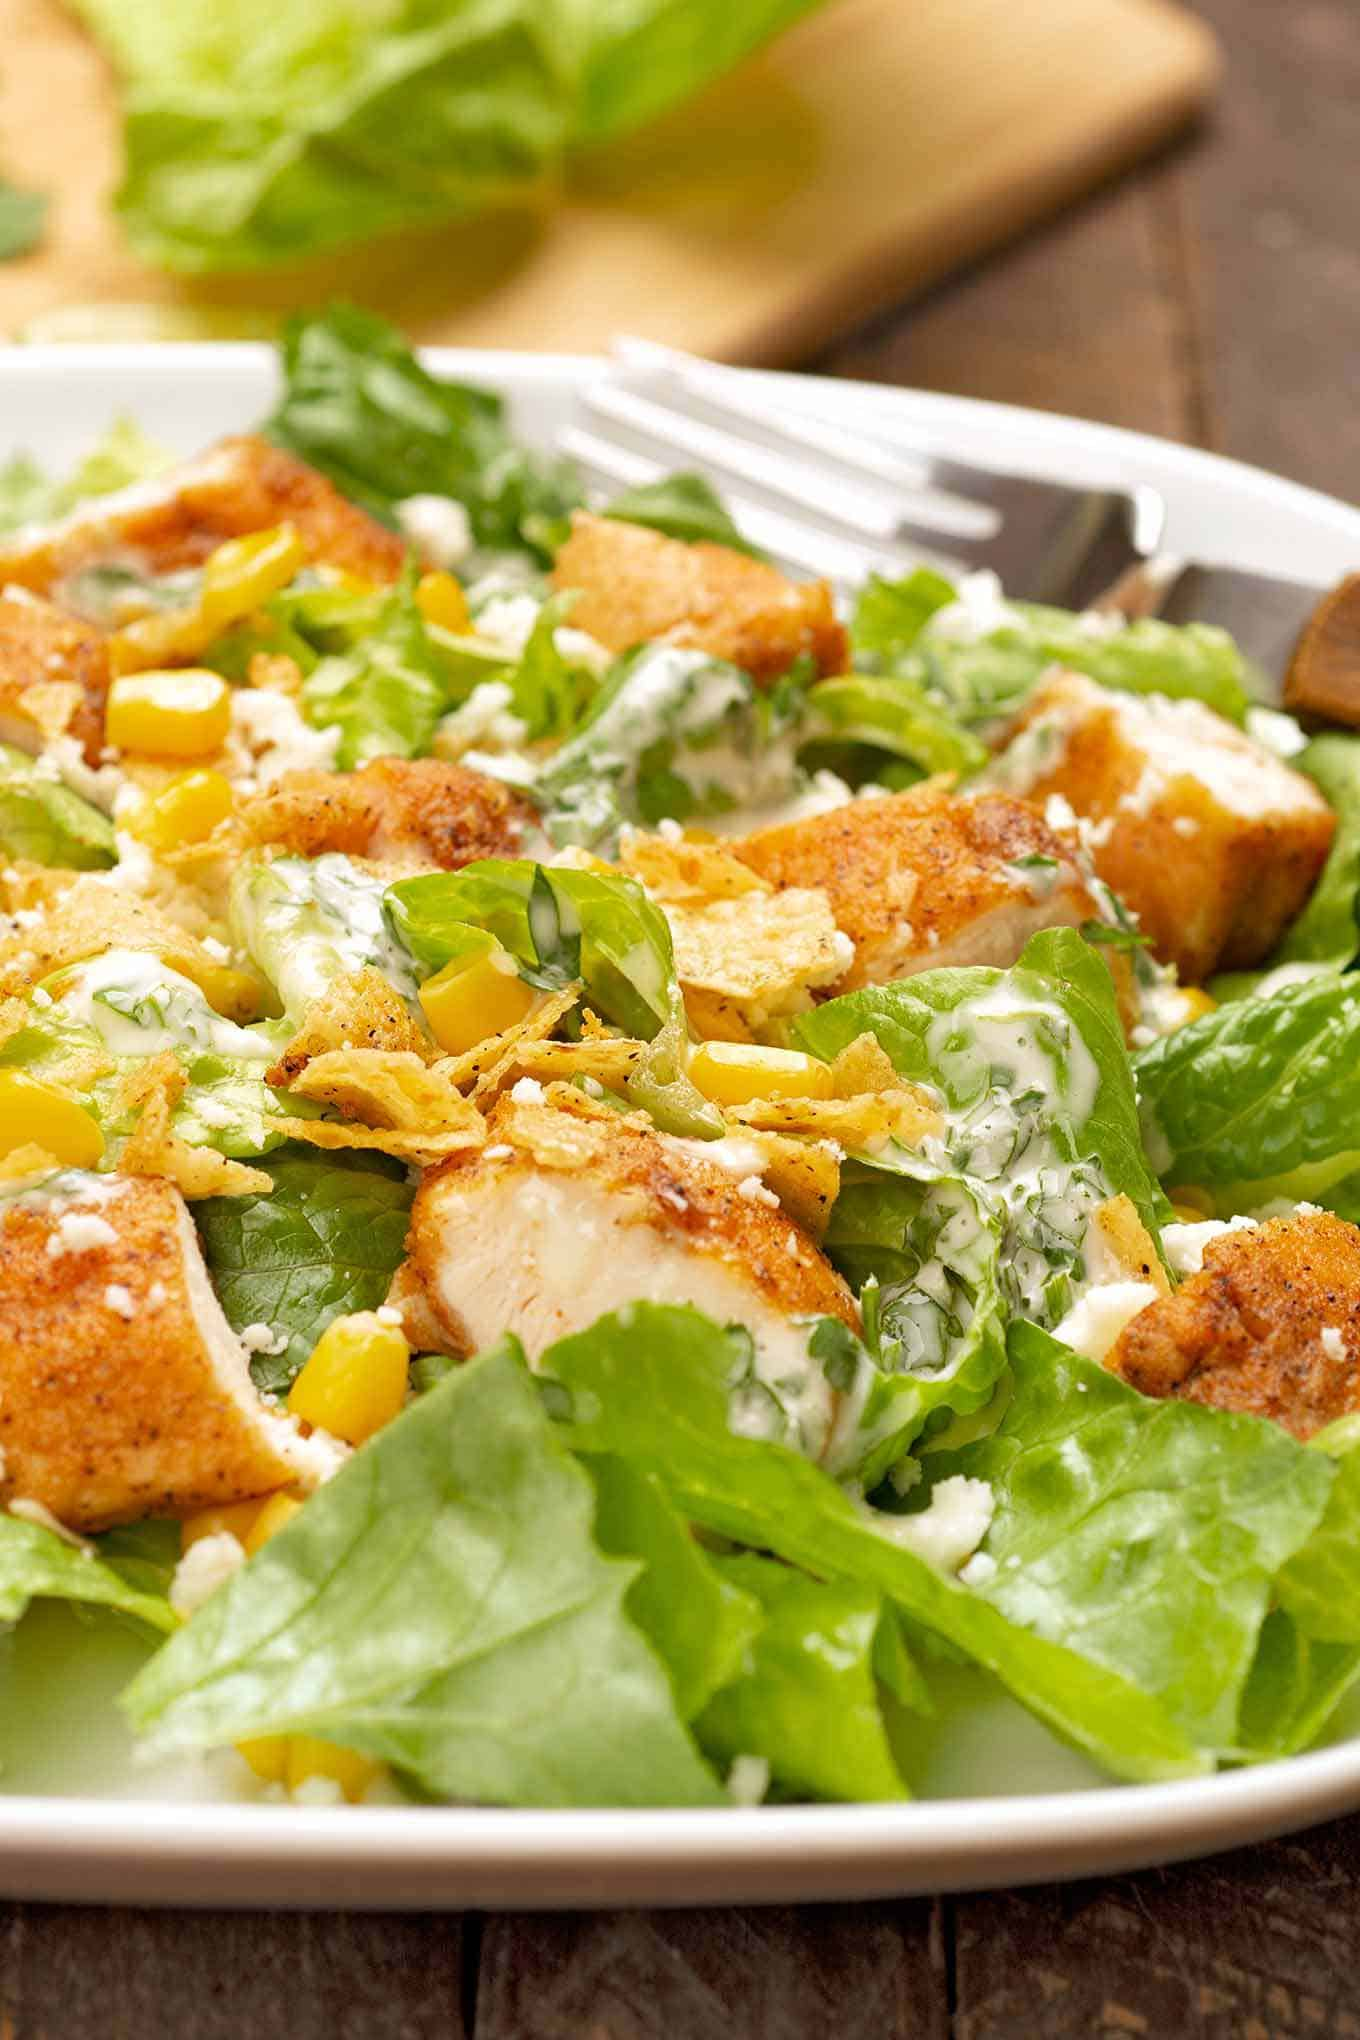 A serving of Caesar salad topped with breaded chicken, corn, cotija cheese, and tortilla chips.